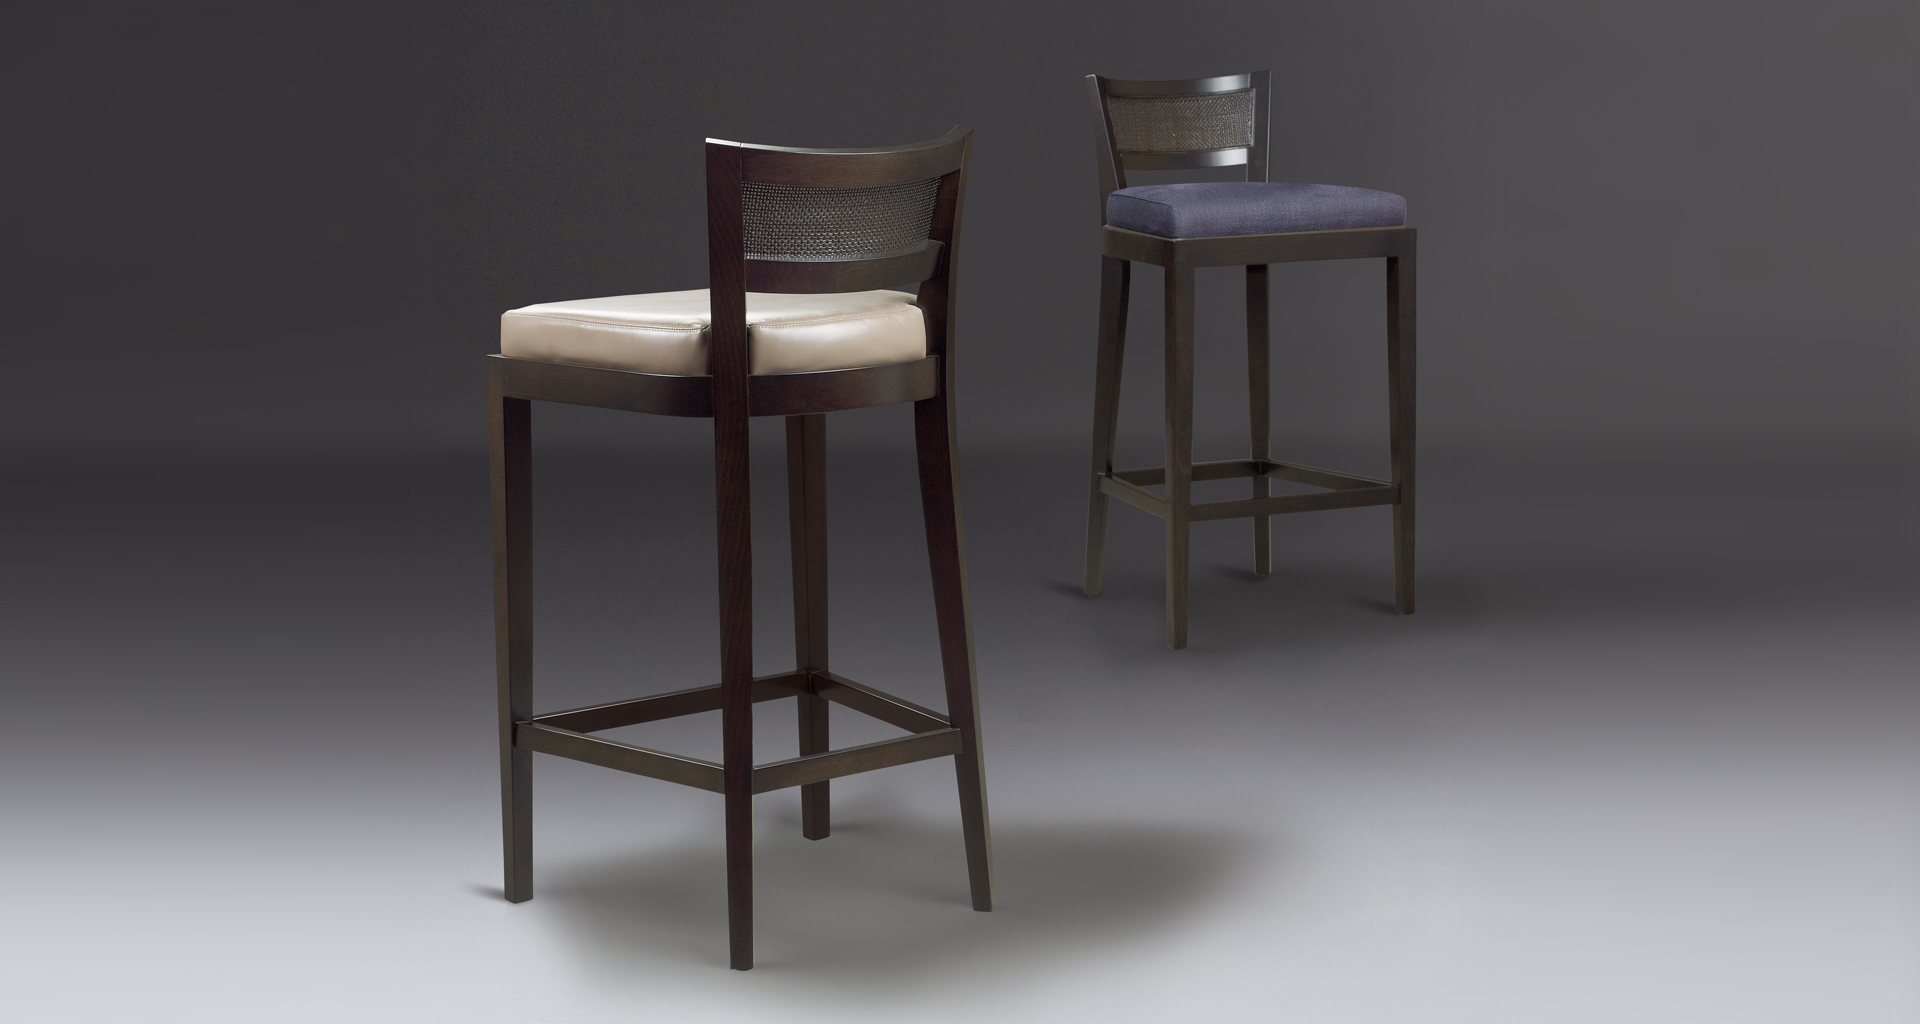 Caffè is a wooden stool with straw back and fabric or leather seat, from Promemoria's catalogue | Promemoria